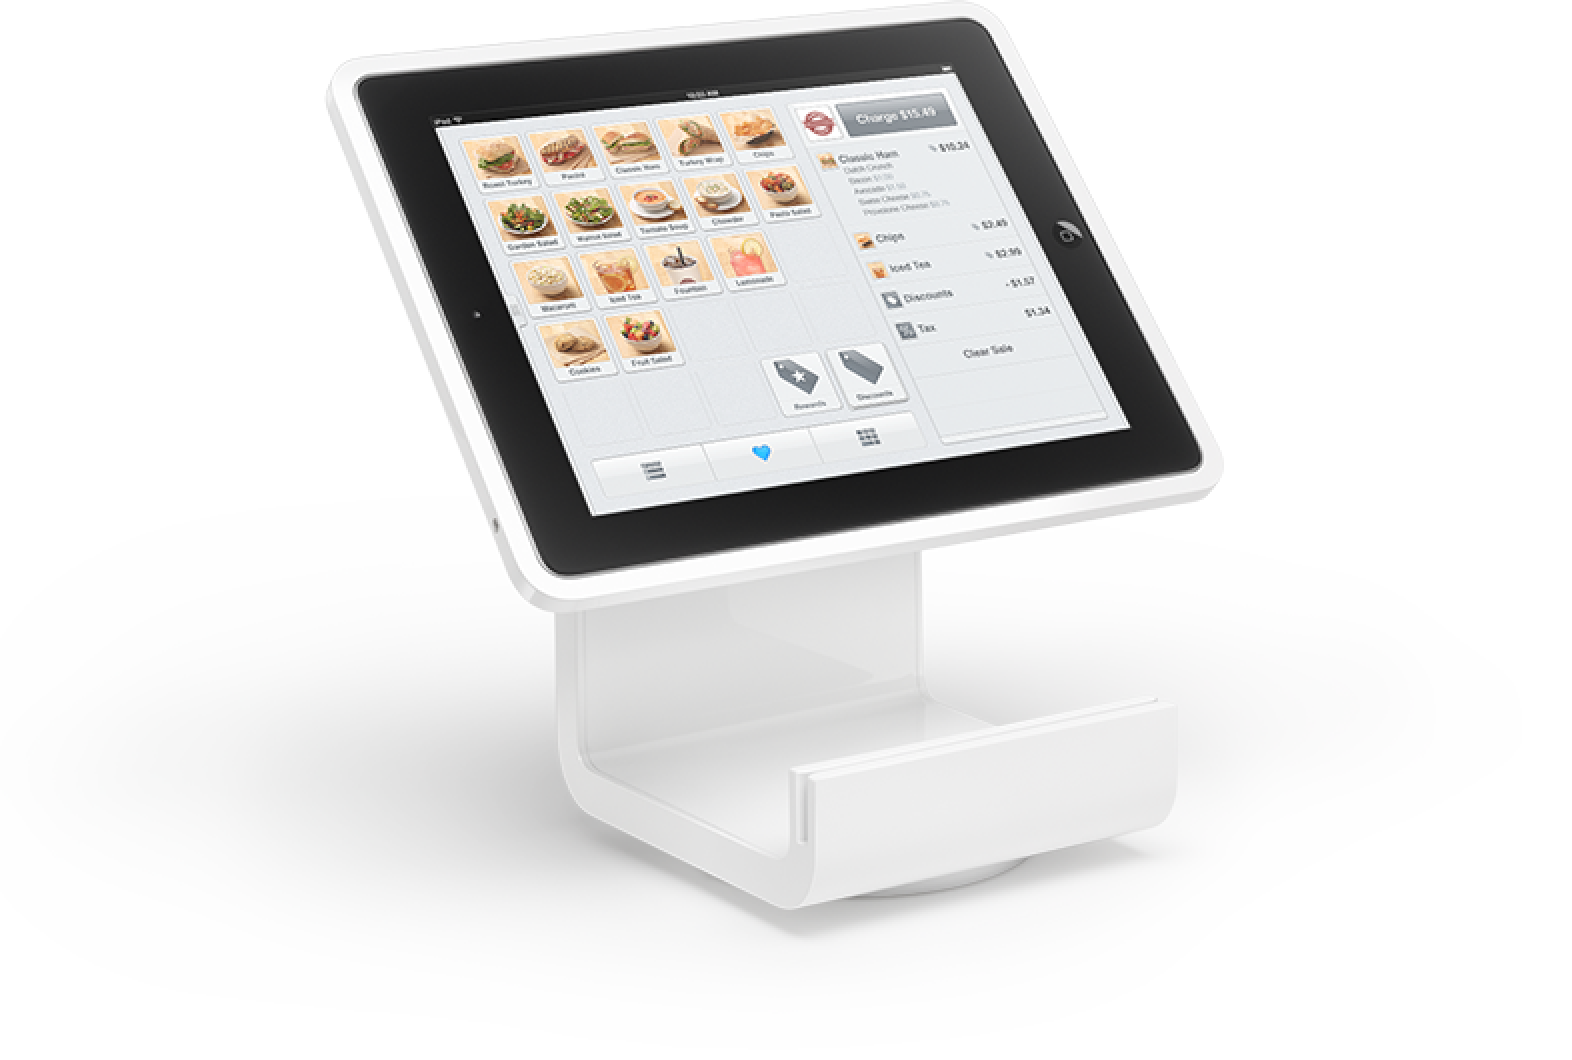 Square really is more than just a point of sale system!